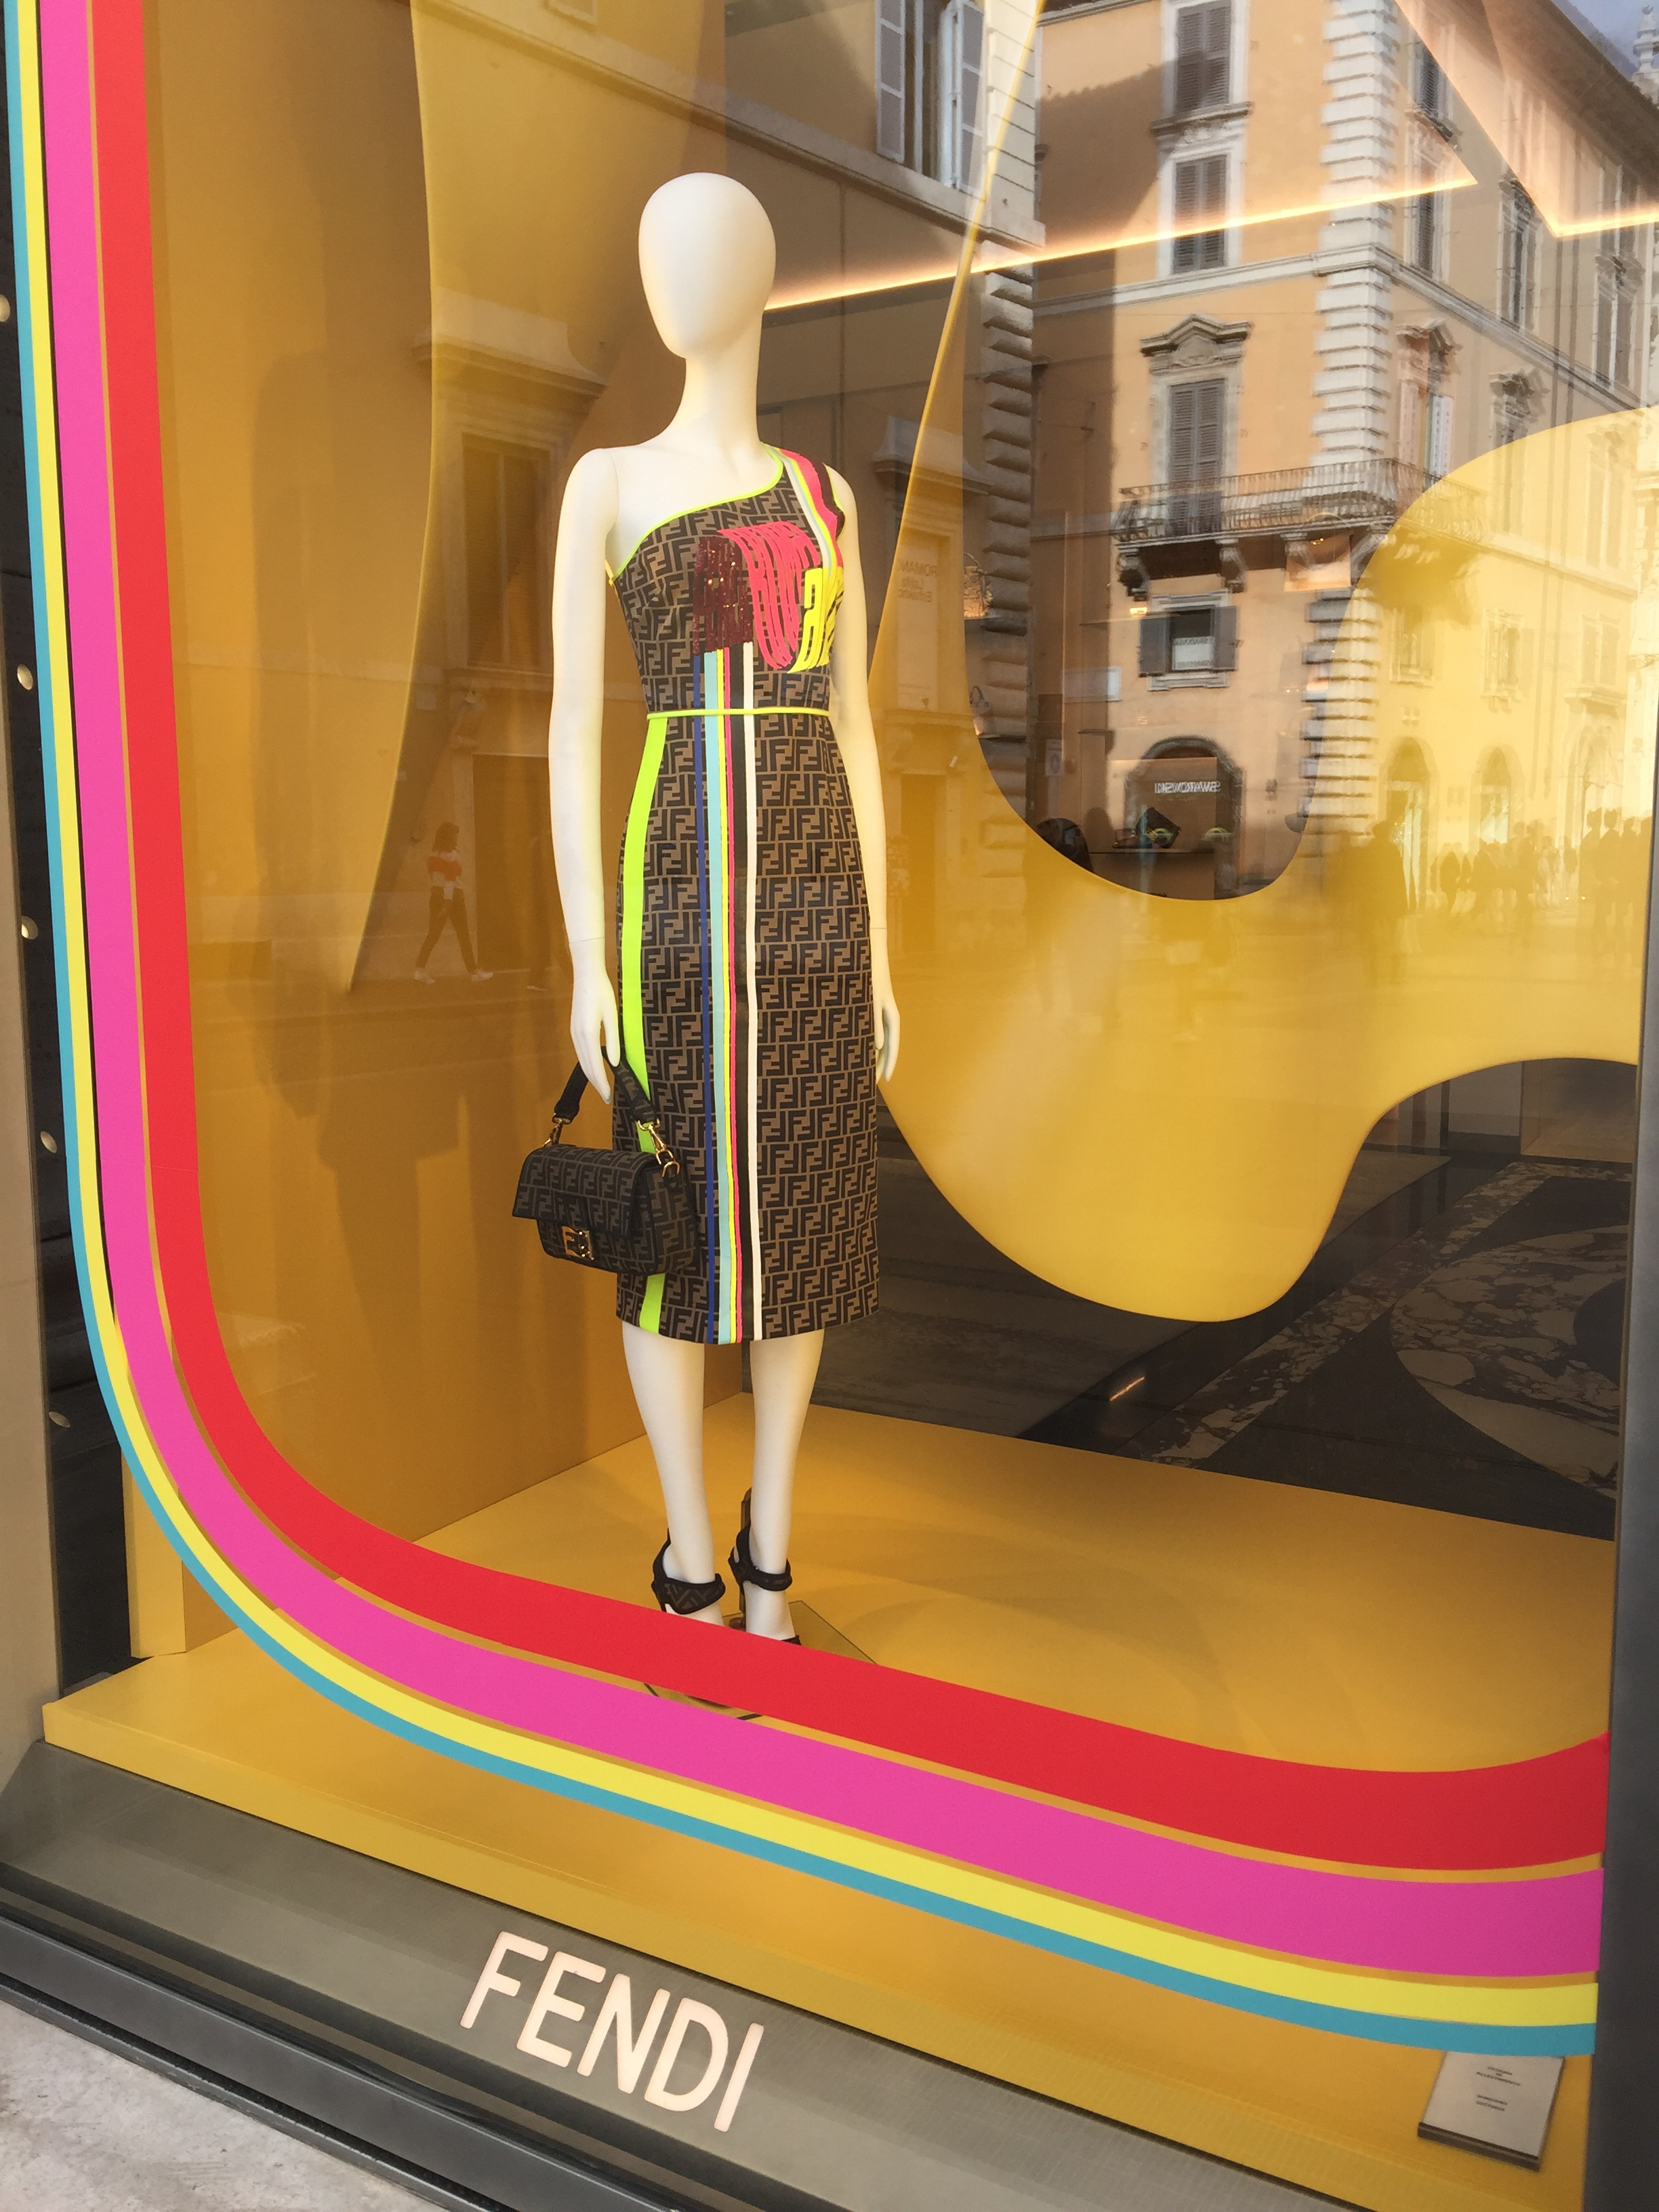 Fendi -May 2019- Roma Luxury- Shopping in Rome